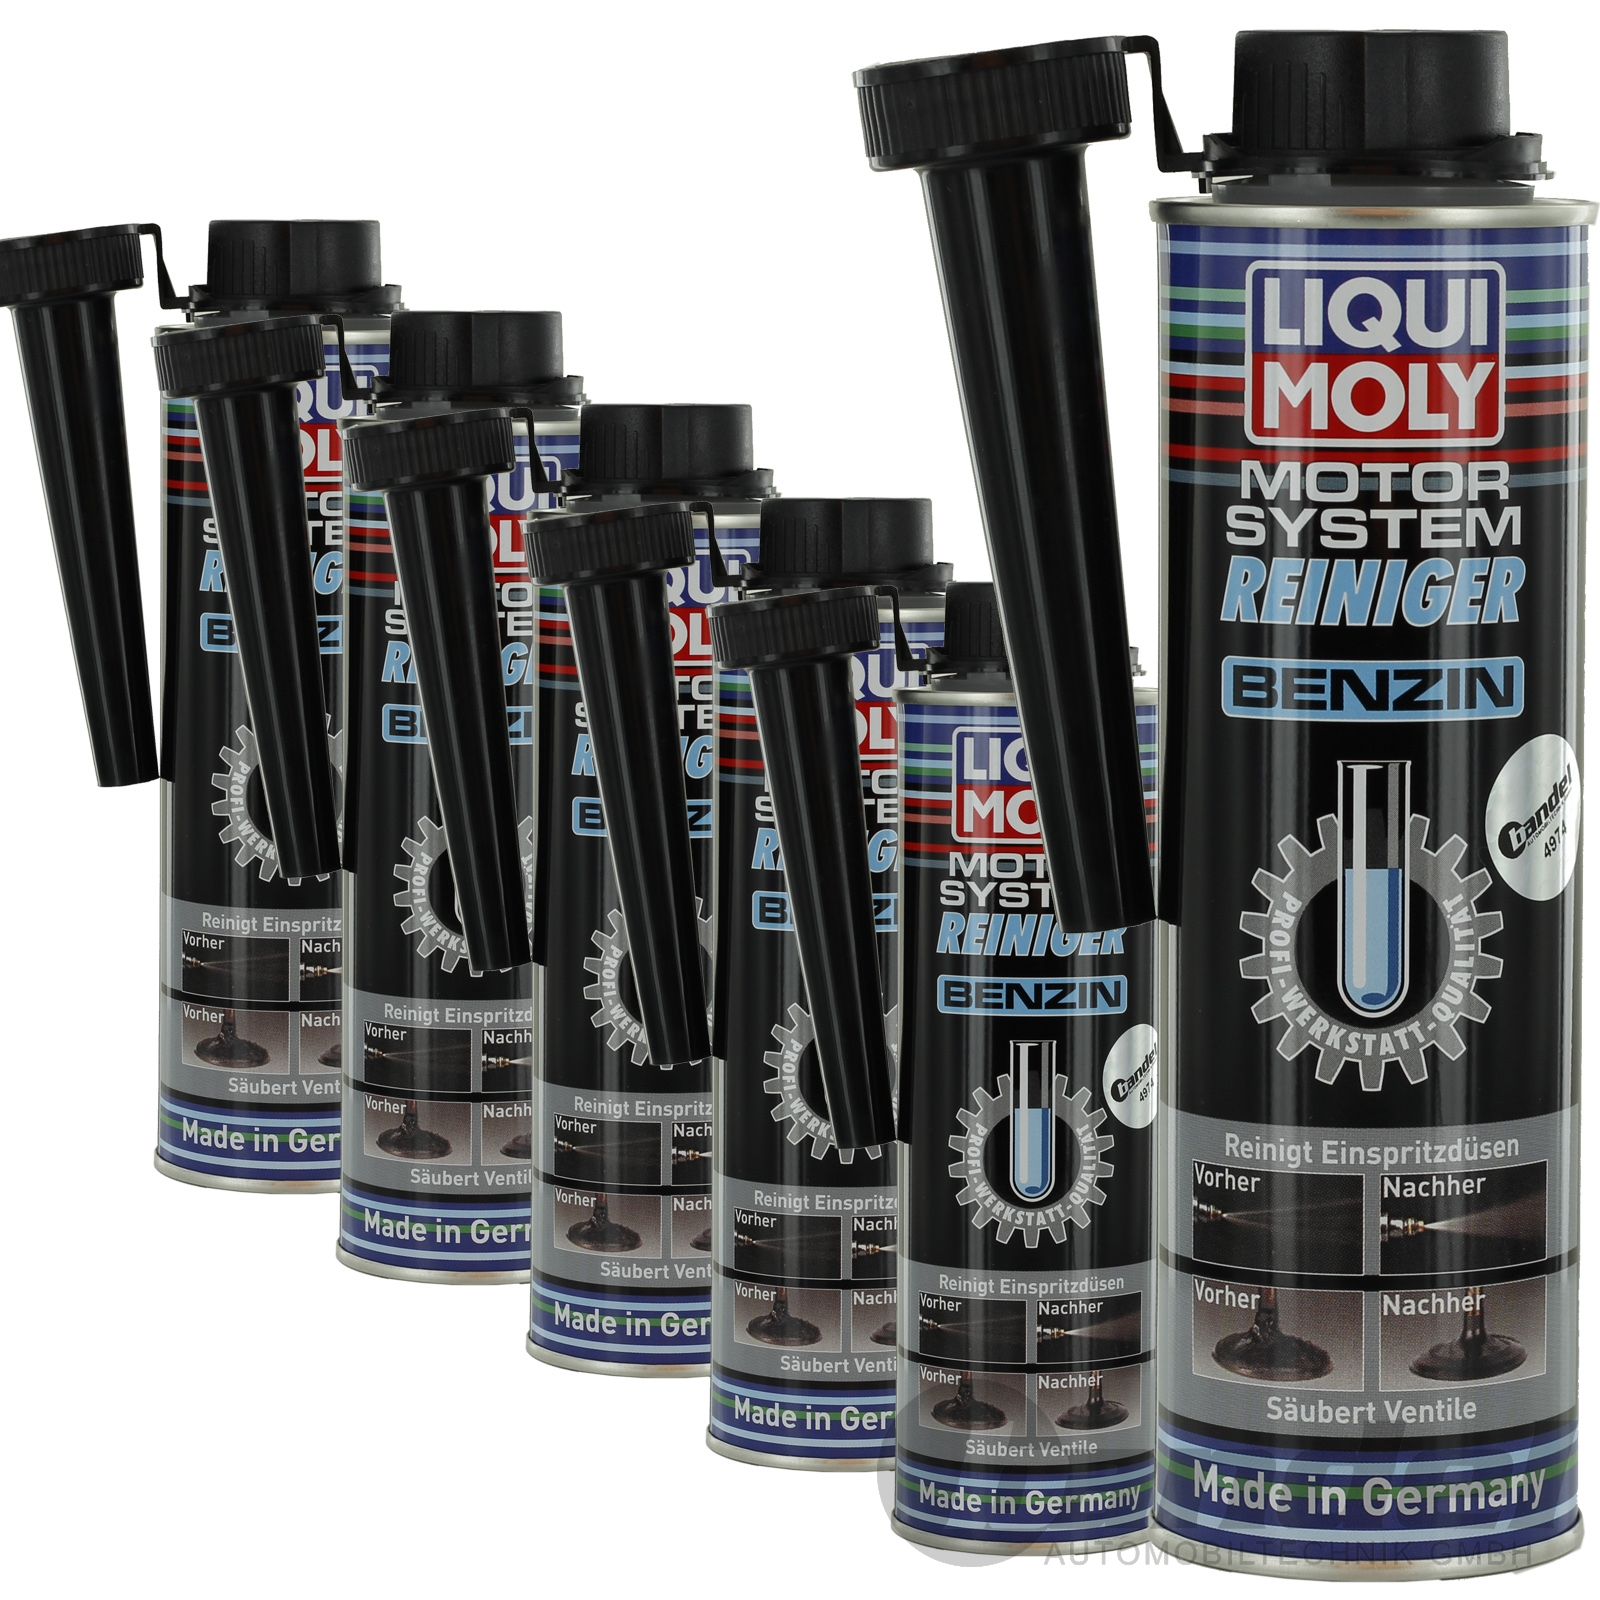 29 39 l 6x 300ml liqui moly motor system reiniger. Black Bedroom Furniture Sets. Home Design Ideas